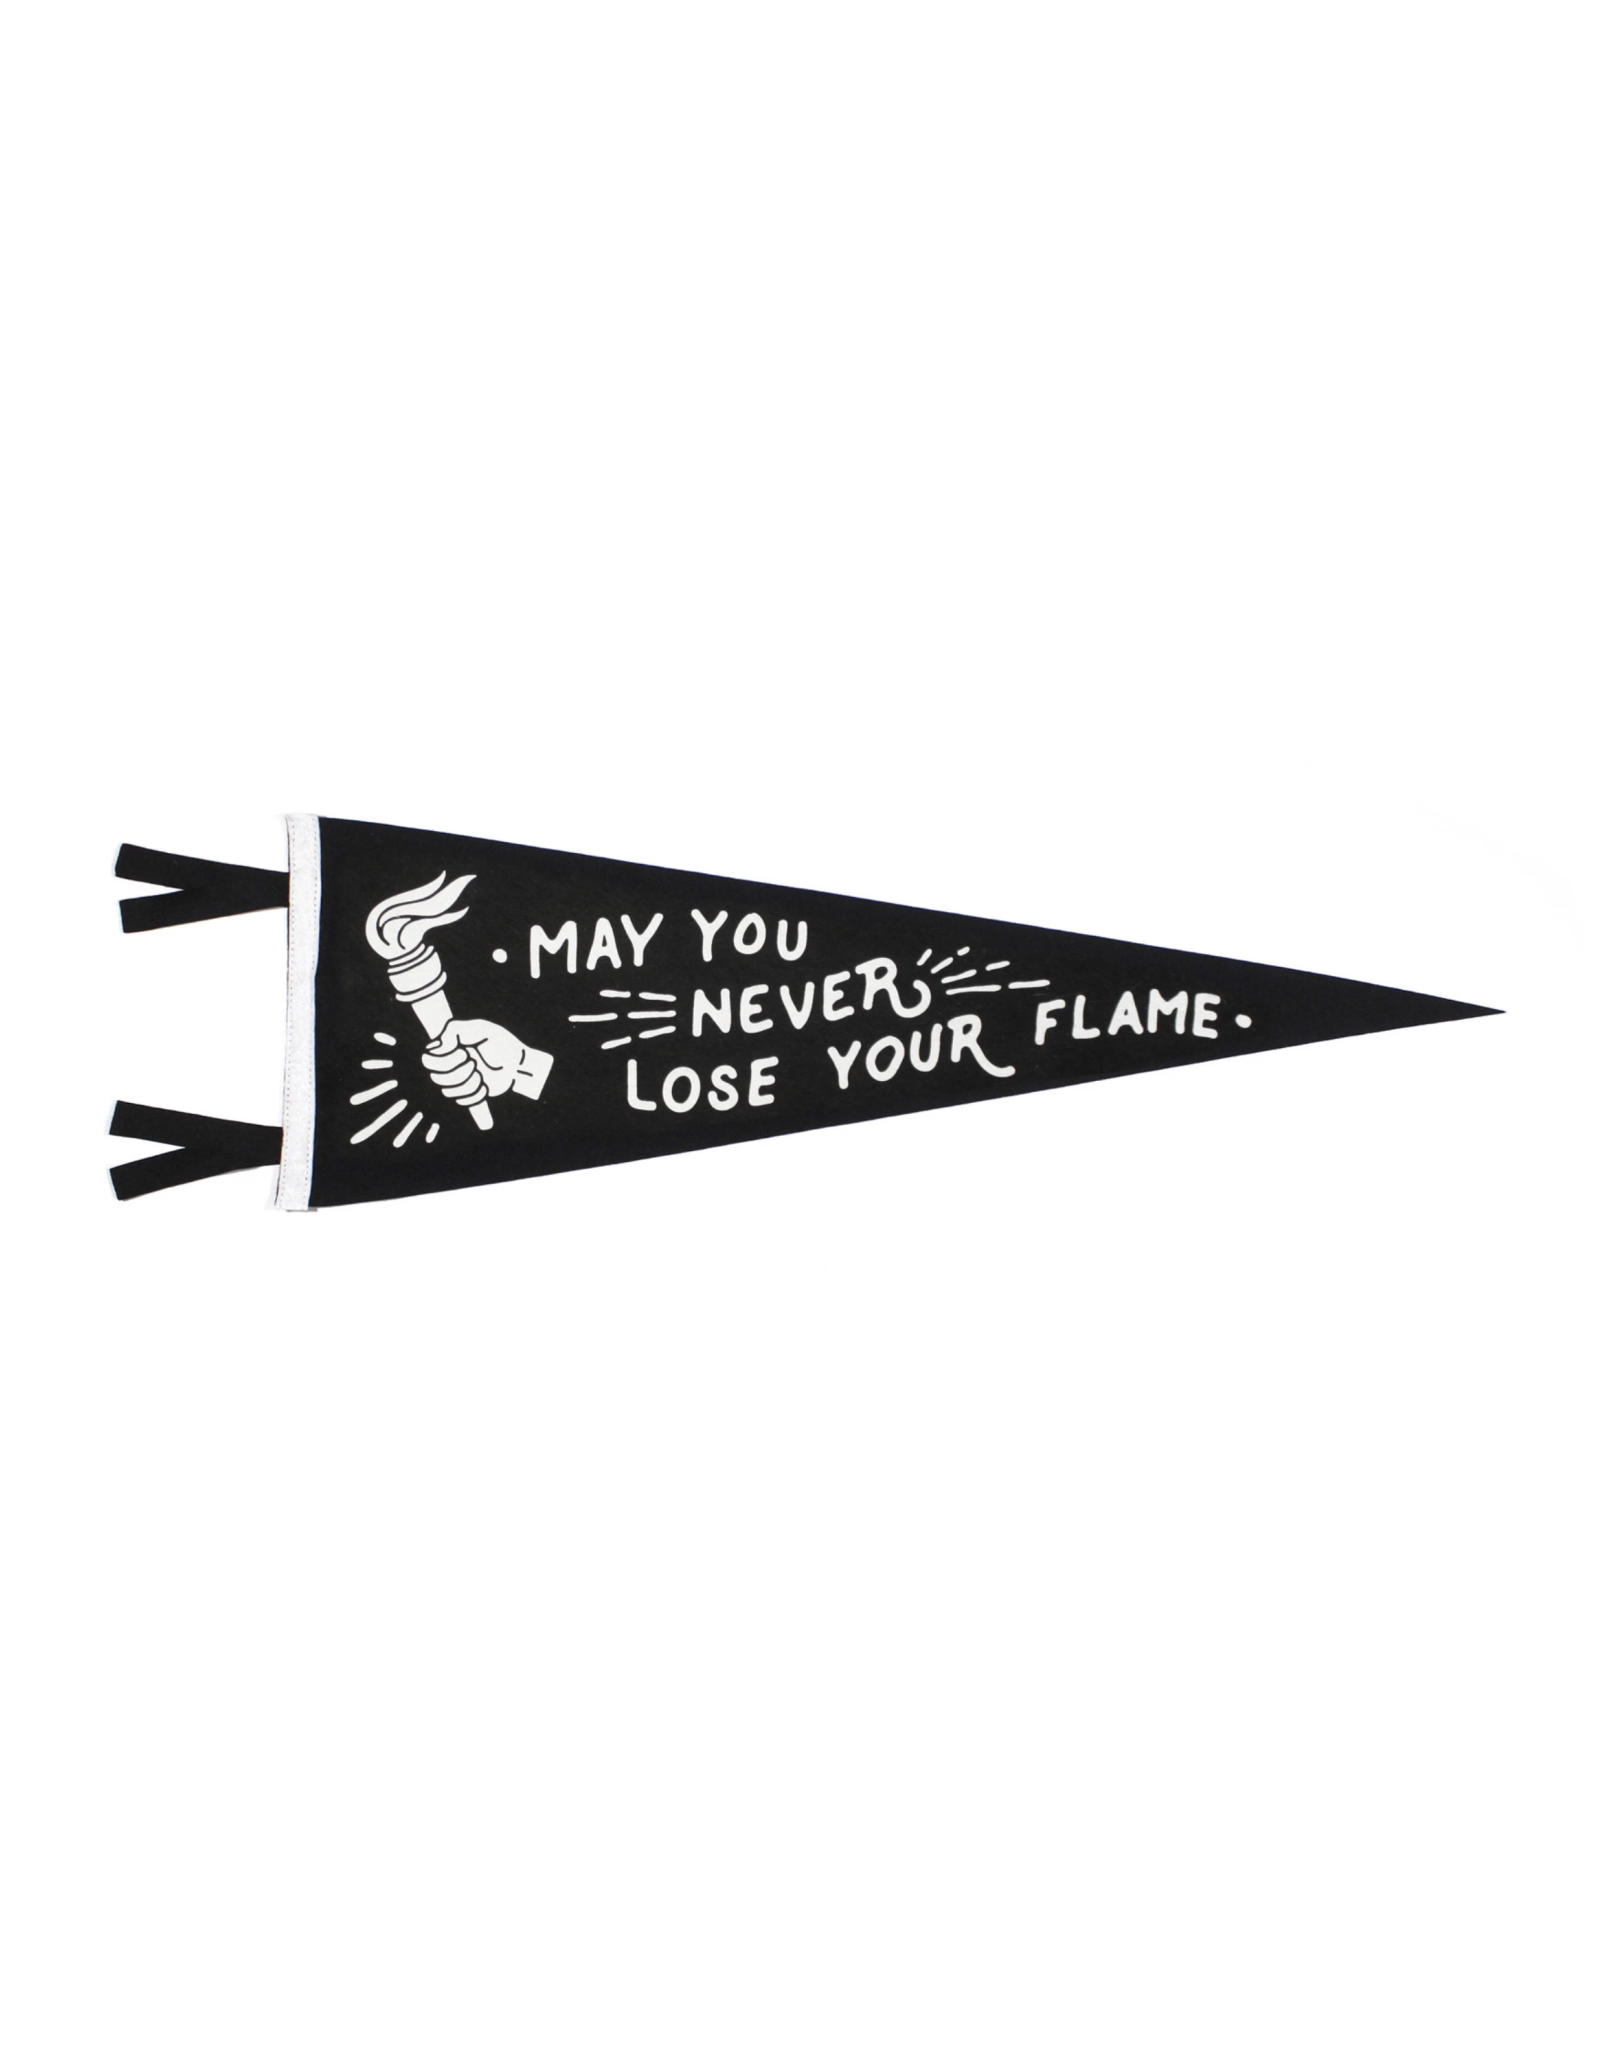 Oxford Pennant May You Never Lose Your Flame Pennant